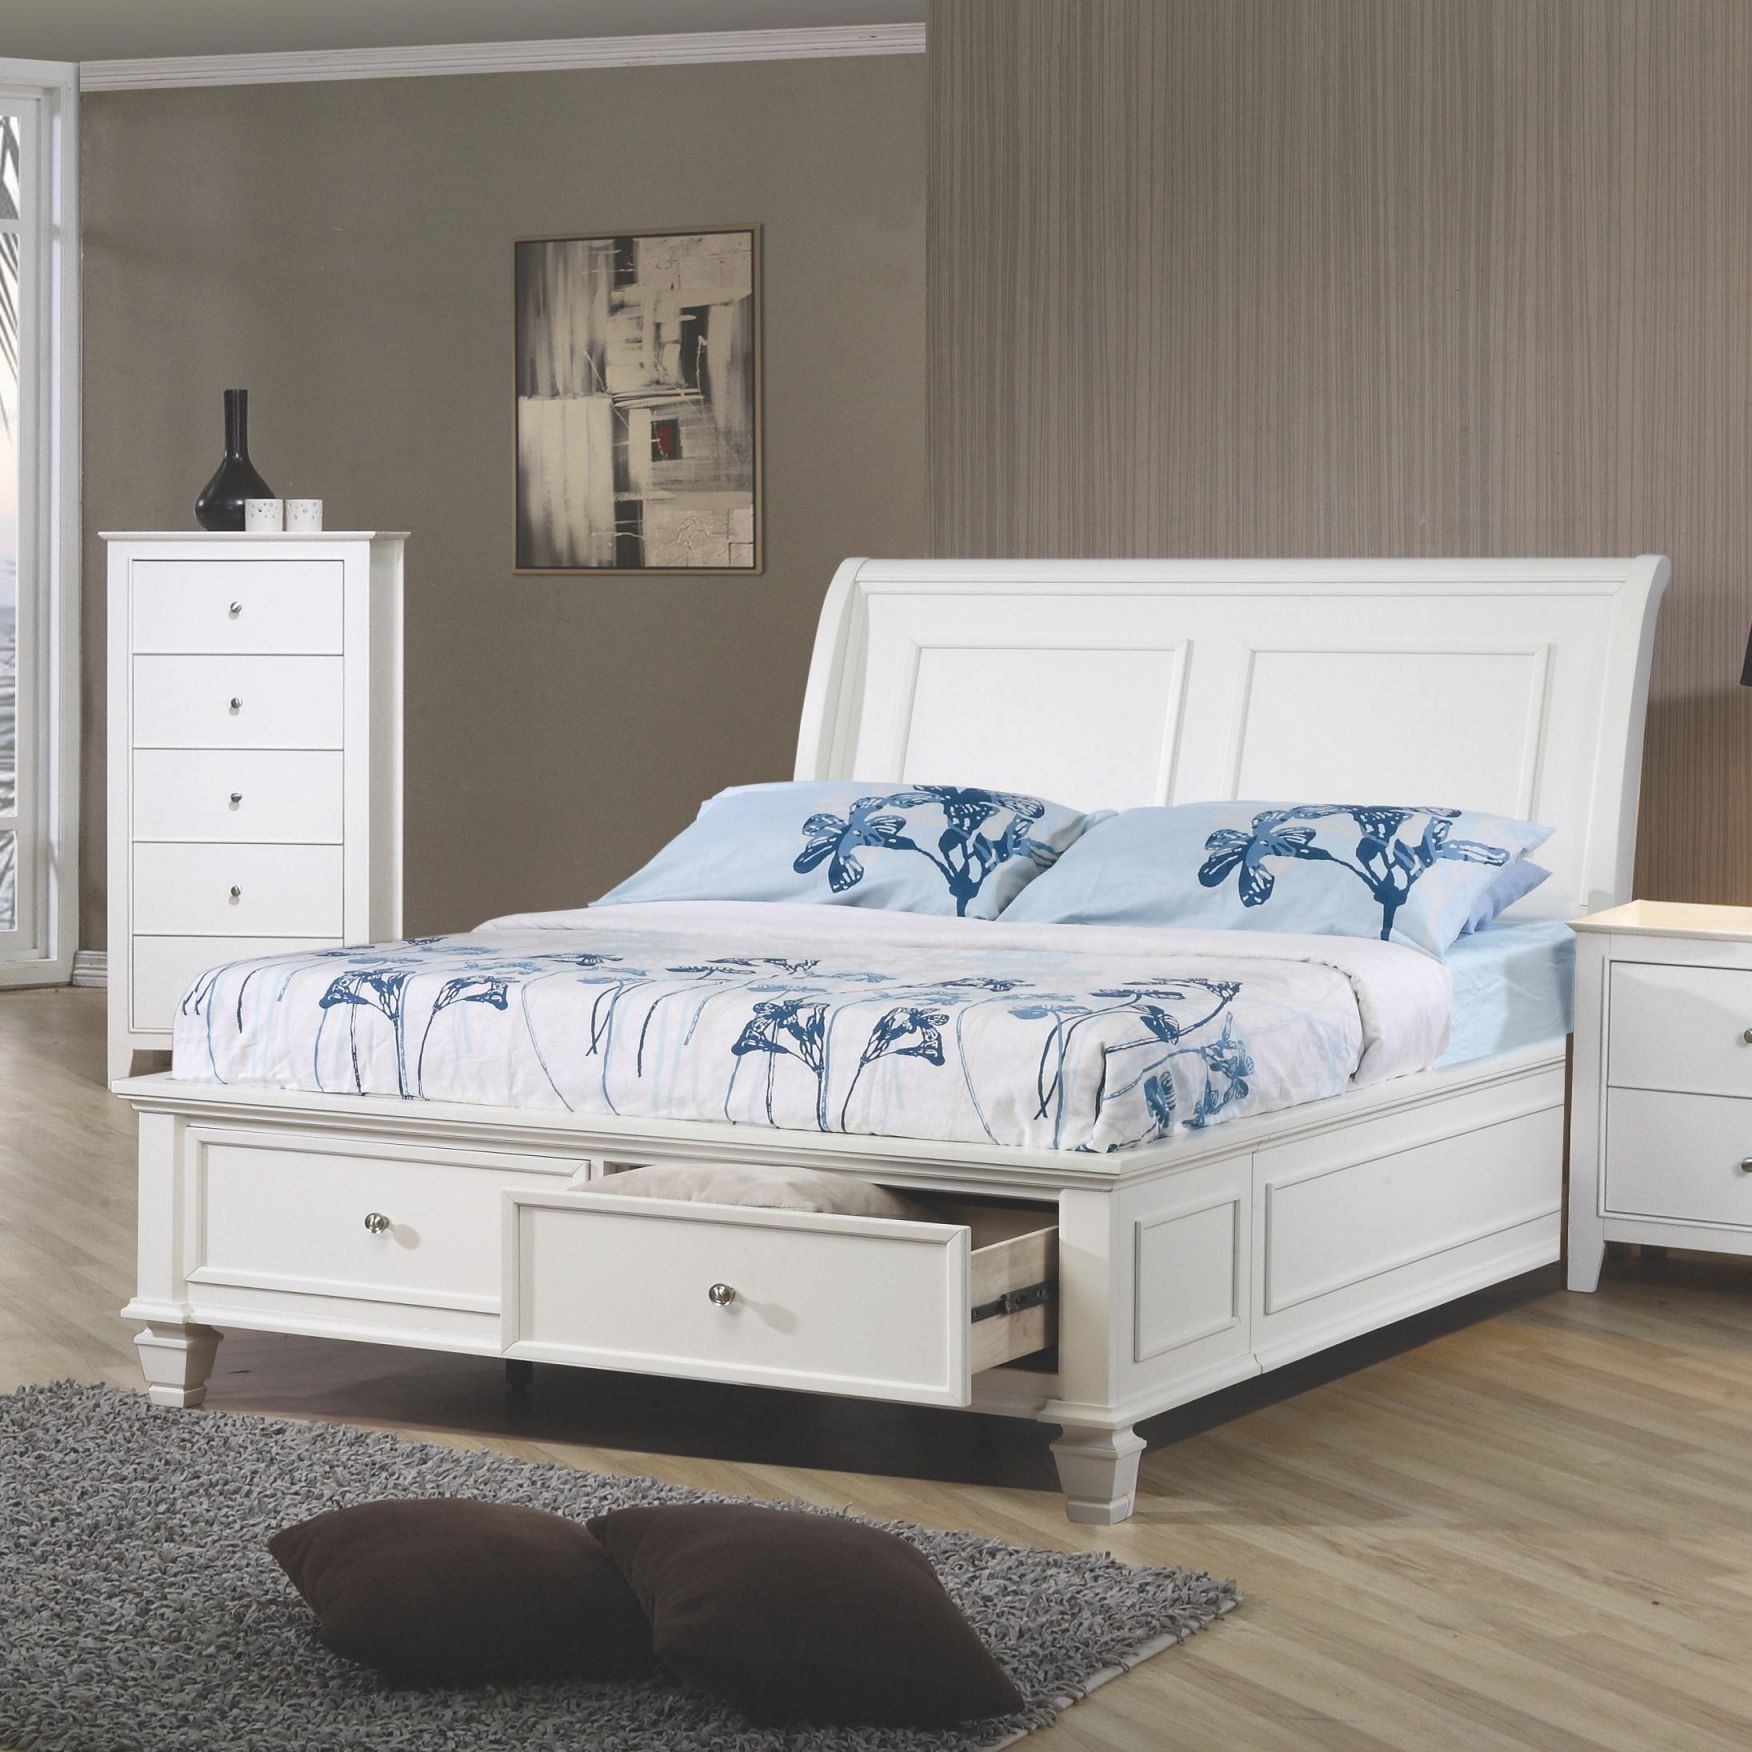 Sandy Beach Full Sleigh Bed With Footboard Storagecoaster At Value City Furniture with Full Size Bedroom Furniture Sets